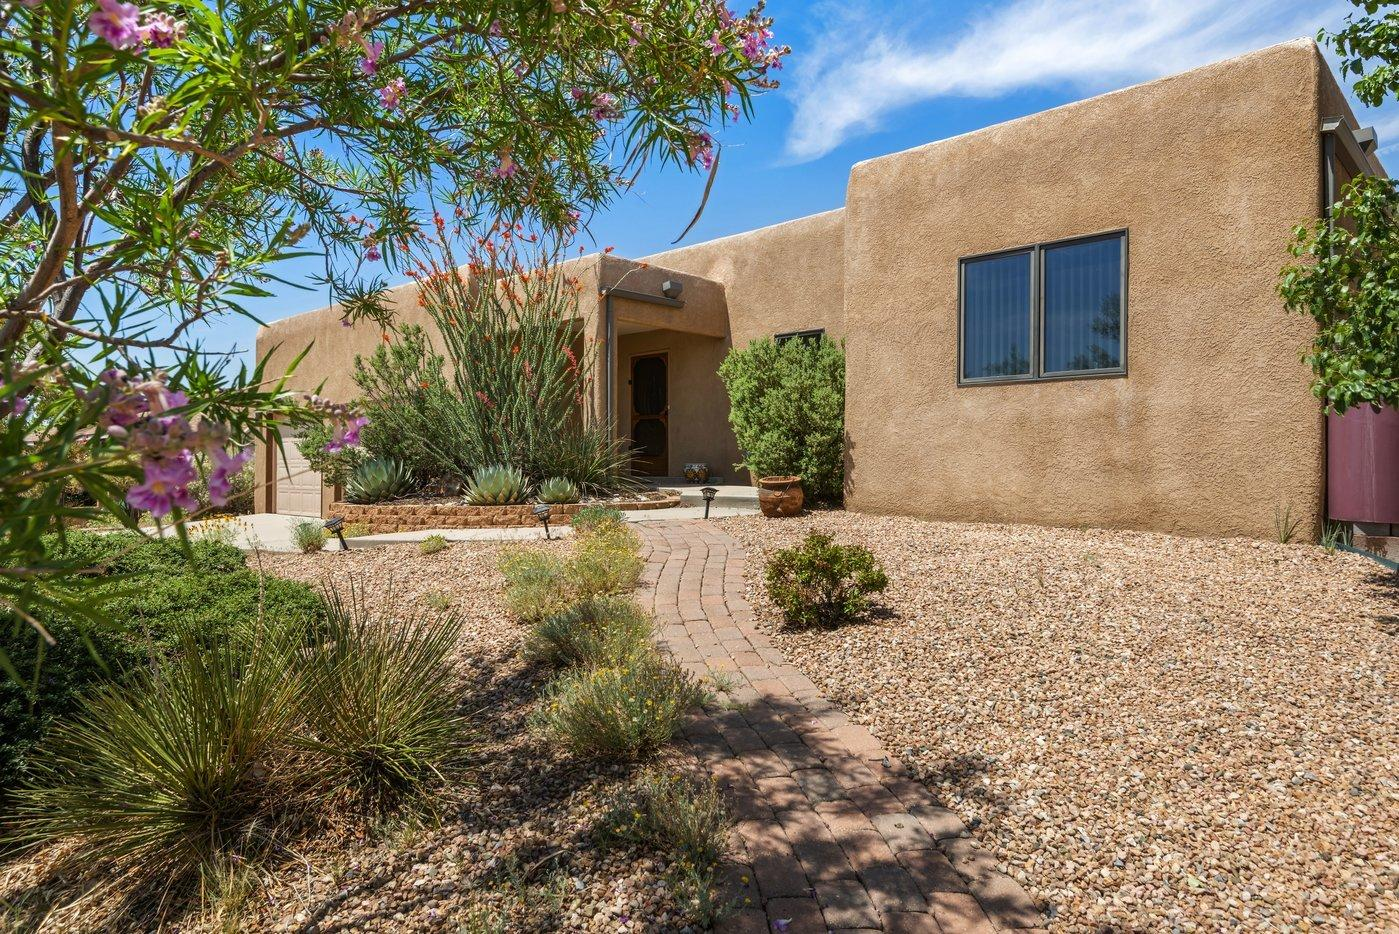 Welcome to this wonderful single level home on .35 acres located in the sought-after Sandia Foothills. The large chef's kitchen is an integral part of the open floor plan concept which connects to the great room. The kitchen features an in-wall oven, an abundance of cabinets, generous countertop space, an island and seating to enjoy the space. With 3 bedroom plus an office/study there is lots of space in this light and bright home. Owner's bedroom and office at opposite ends of the house from guest bedrooms add wonderful privacy. The owner's bedroom has a large walk-in closet, separate tub and shower. Enjoy your summer evenings under your patio large enough for entertaining or cozy enough for yourself. Very private and beautifully landscaped. Additional features of this property are the